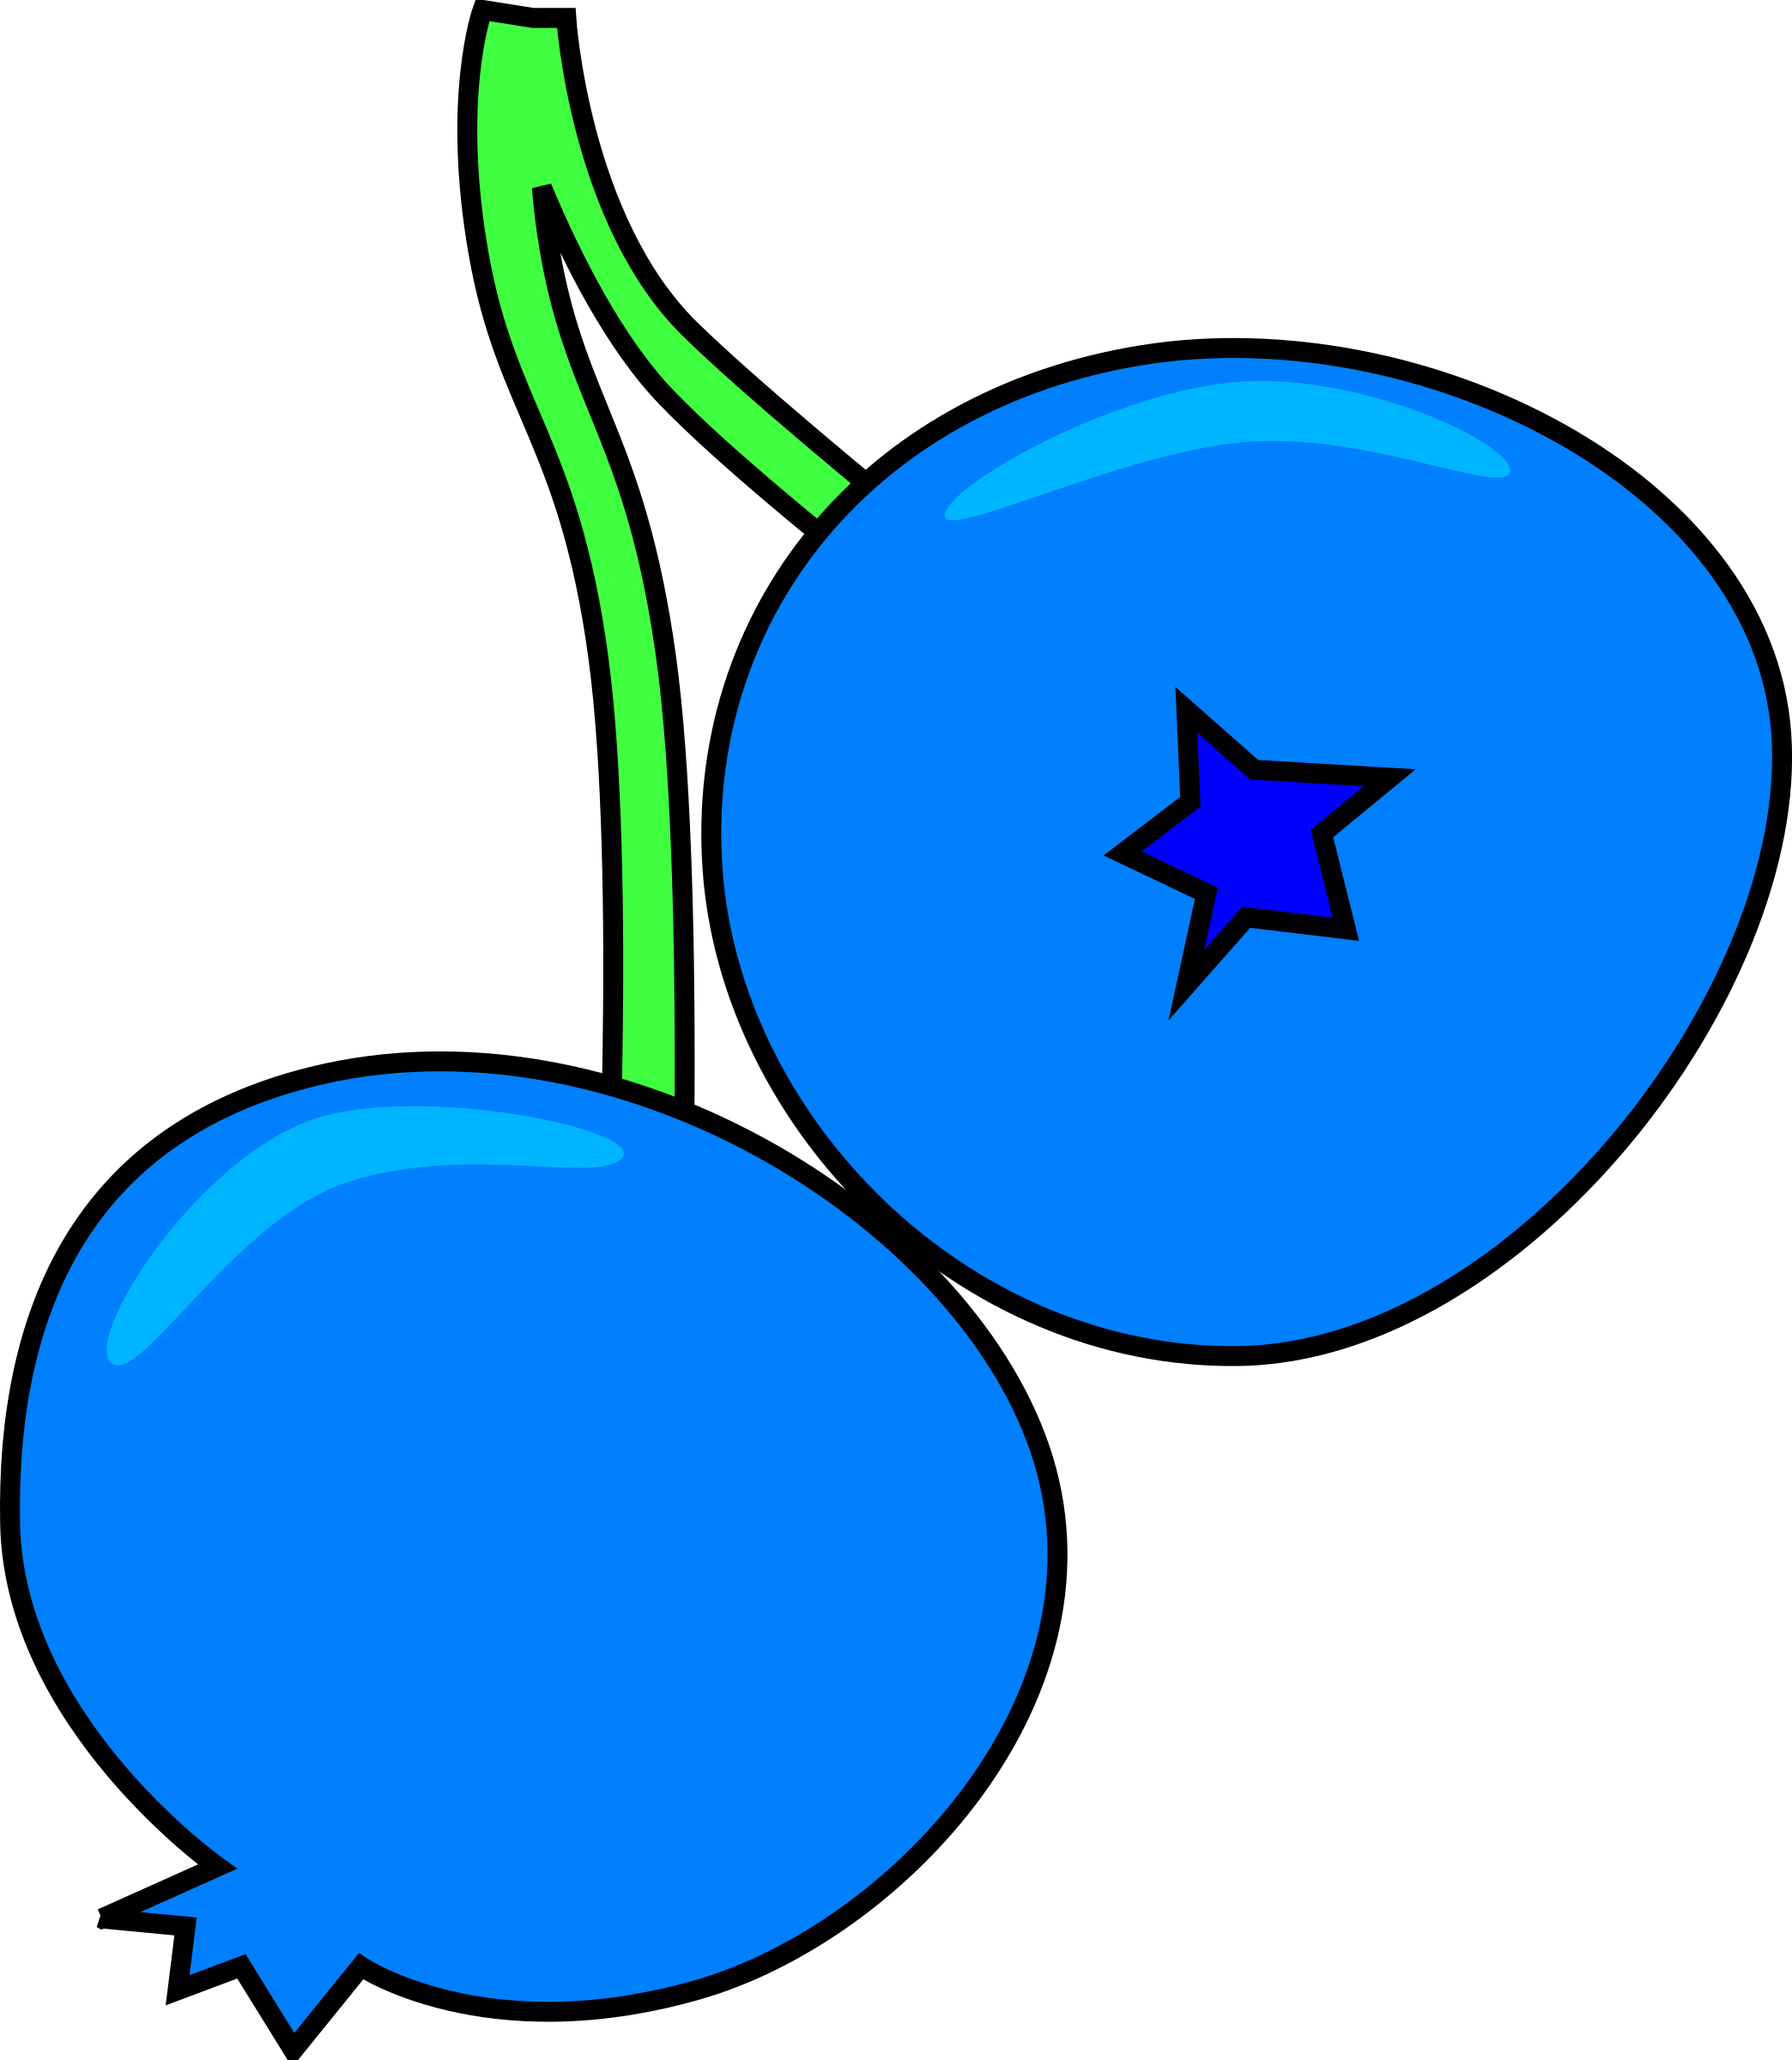 Blueberry clipart single Clipart Blueberry Blueberry